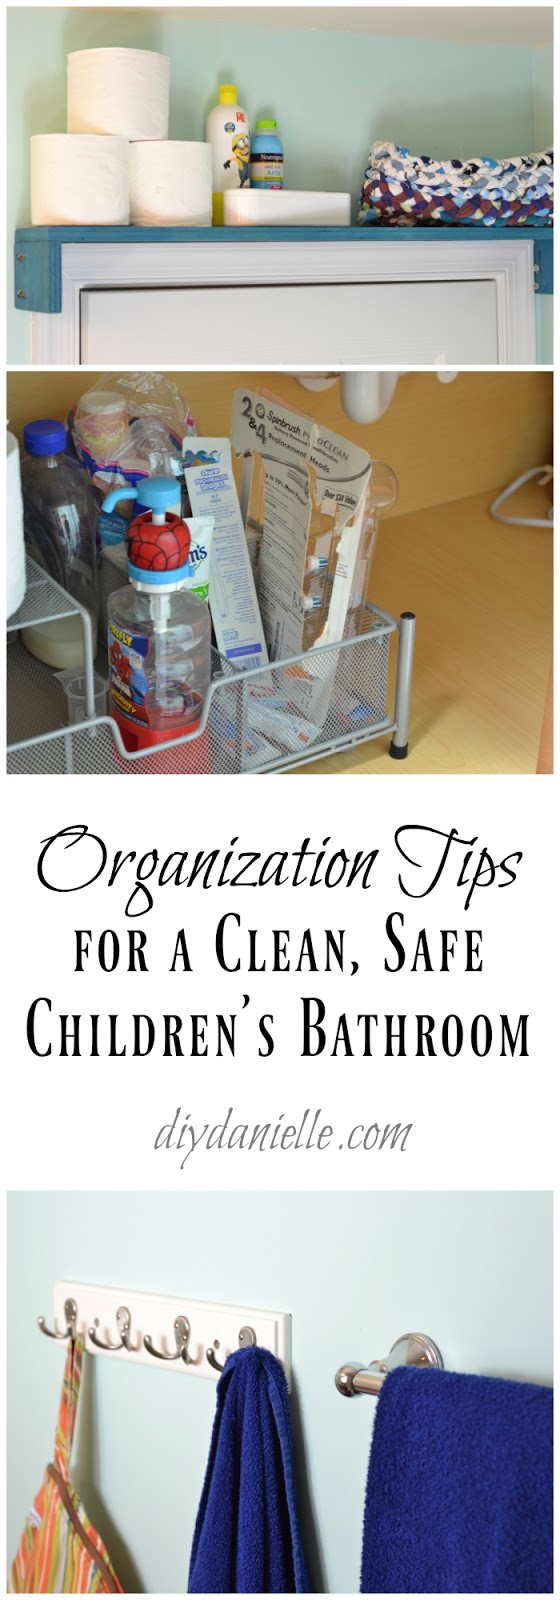 Organizing a Child's Bathroom